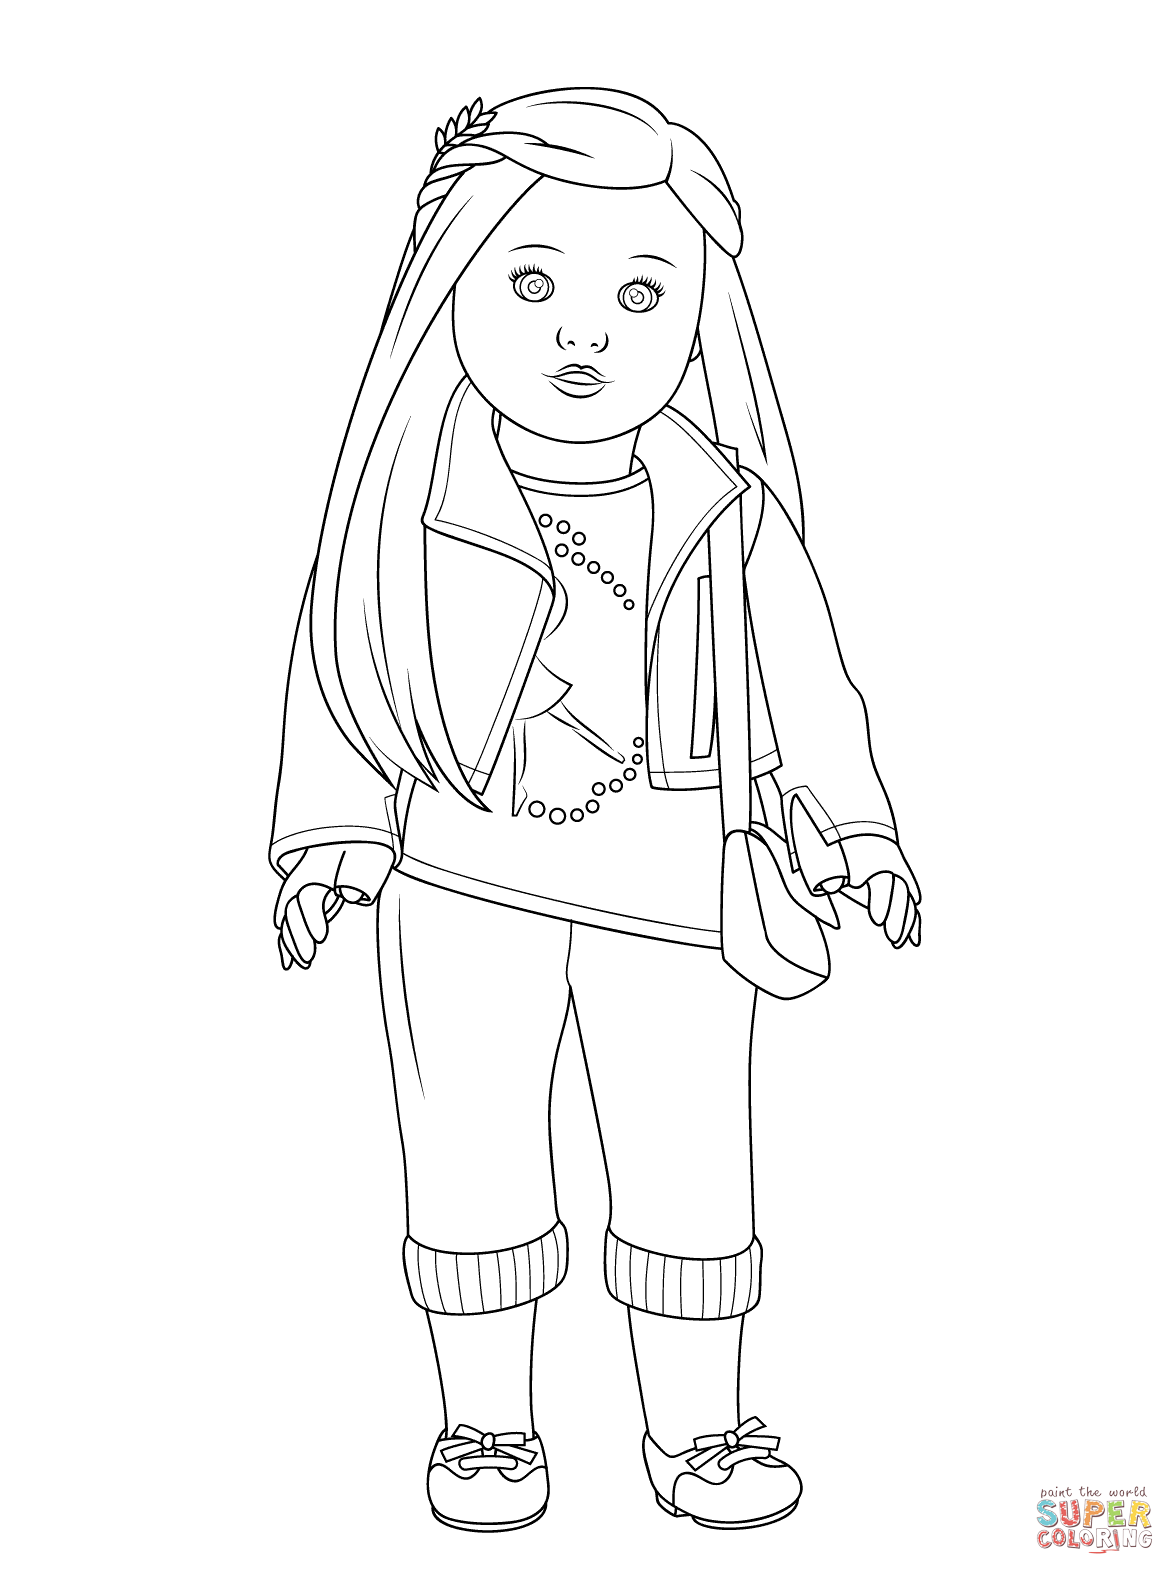 Kit Kittredge Coloring Pages